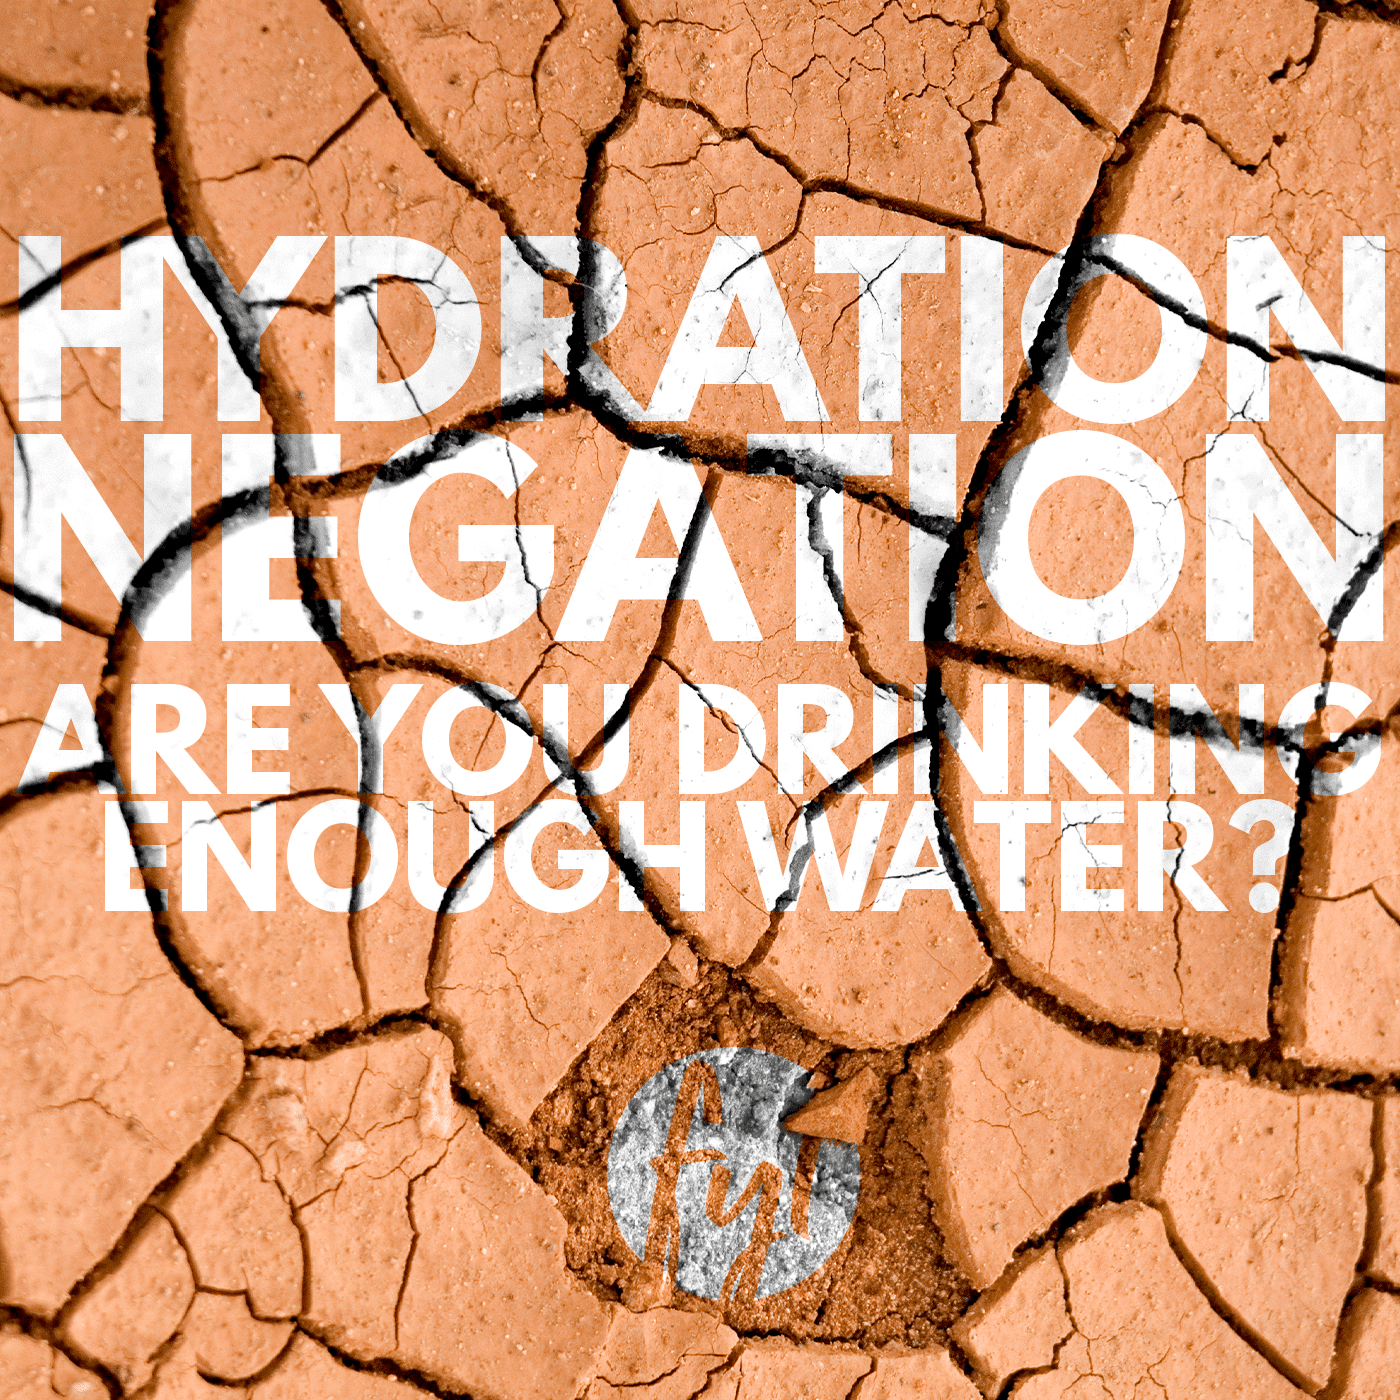 Hydration Negation: Are You Drinking Enough Water?